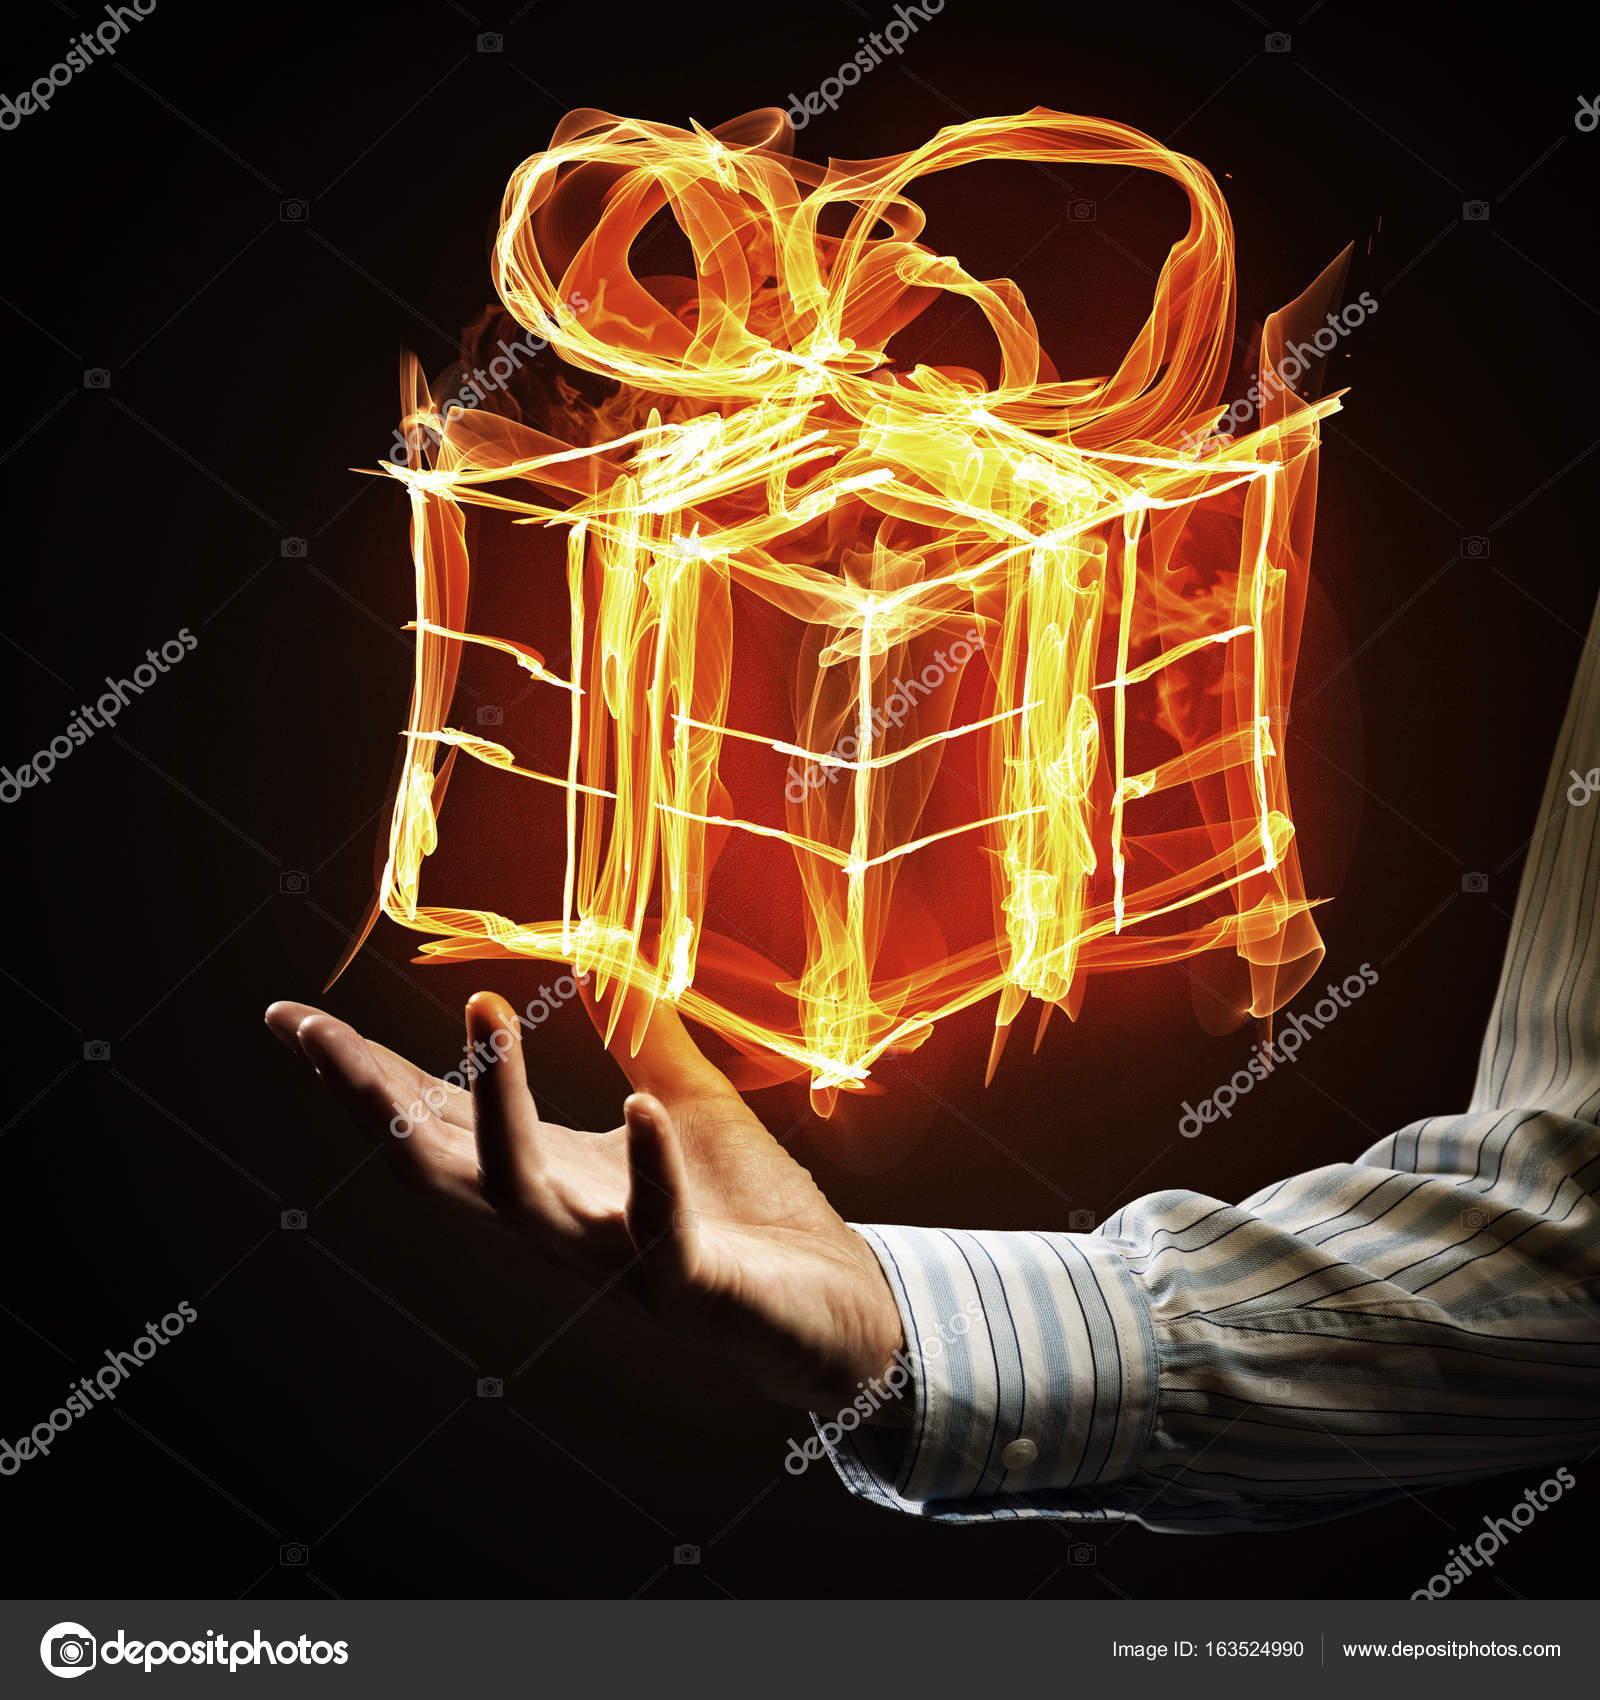 Glowing gift box icon with palm — Stock Photo © Khakimullin #163524990